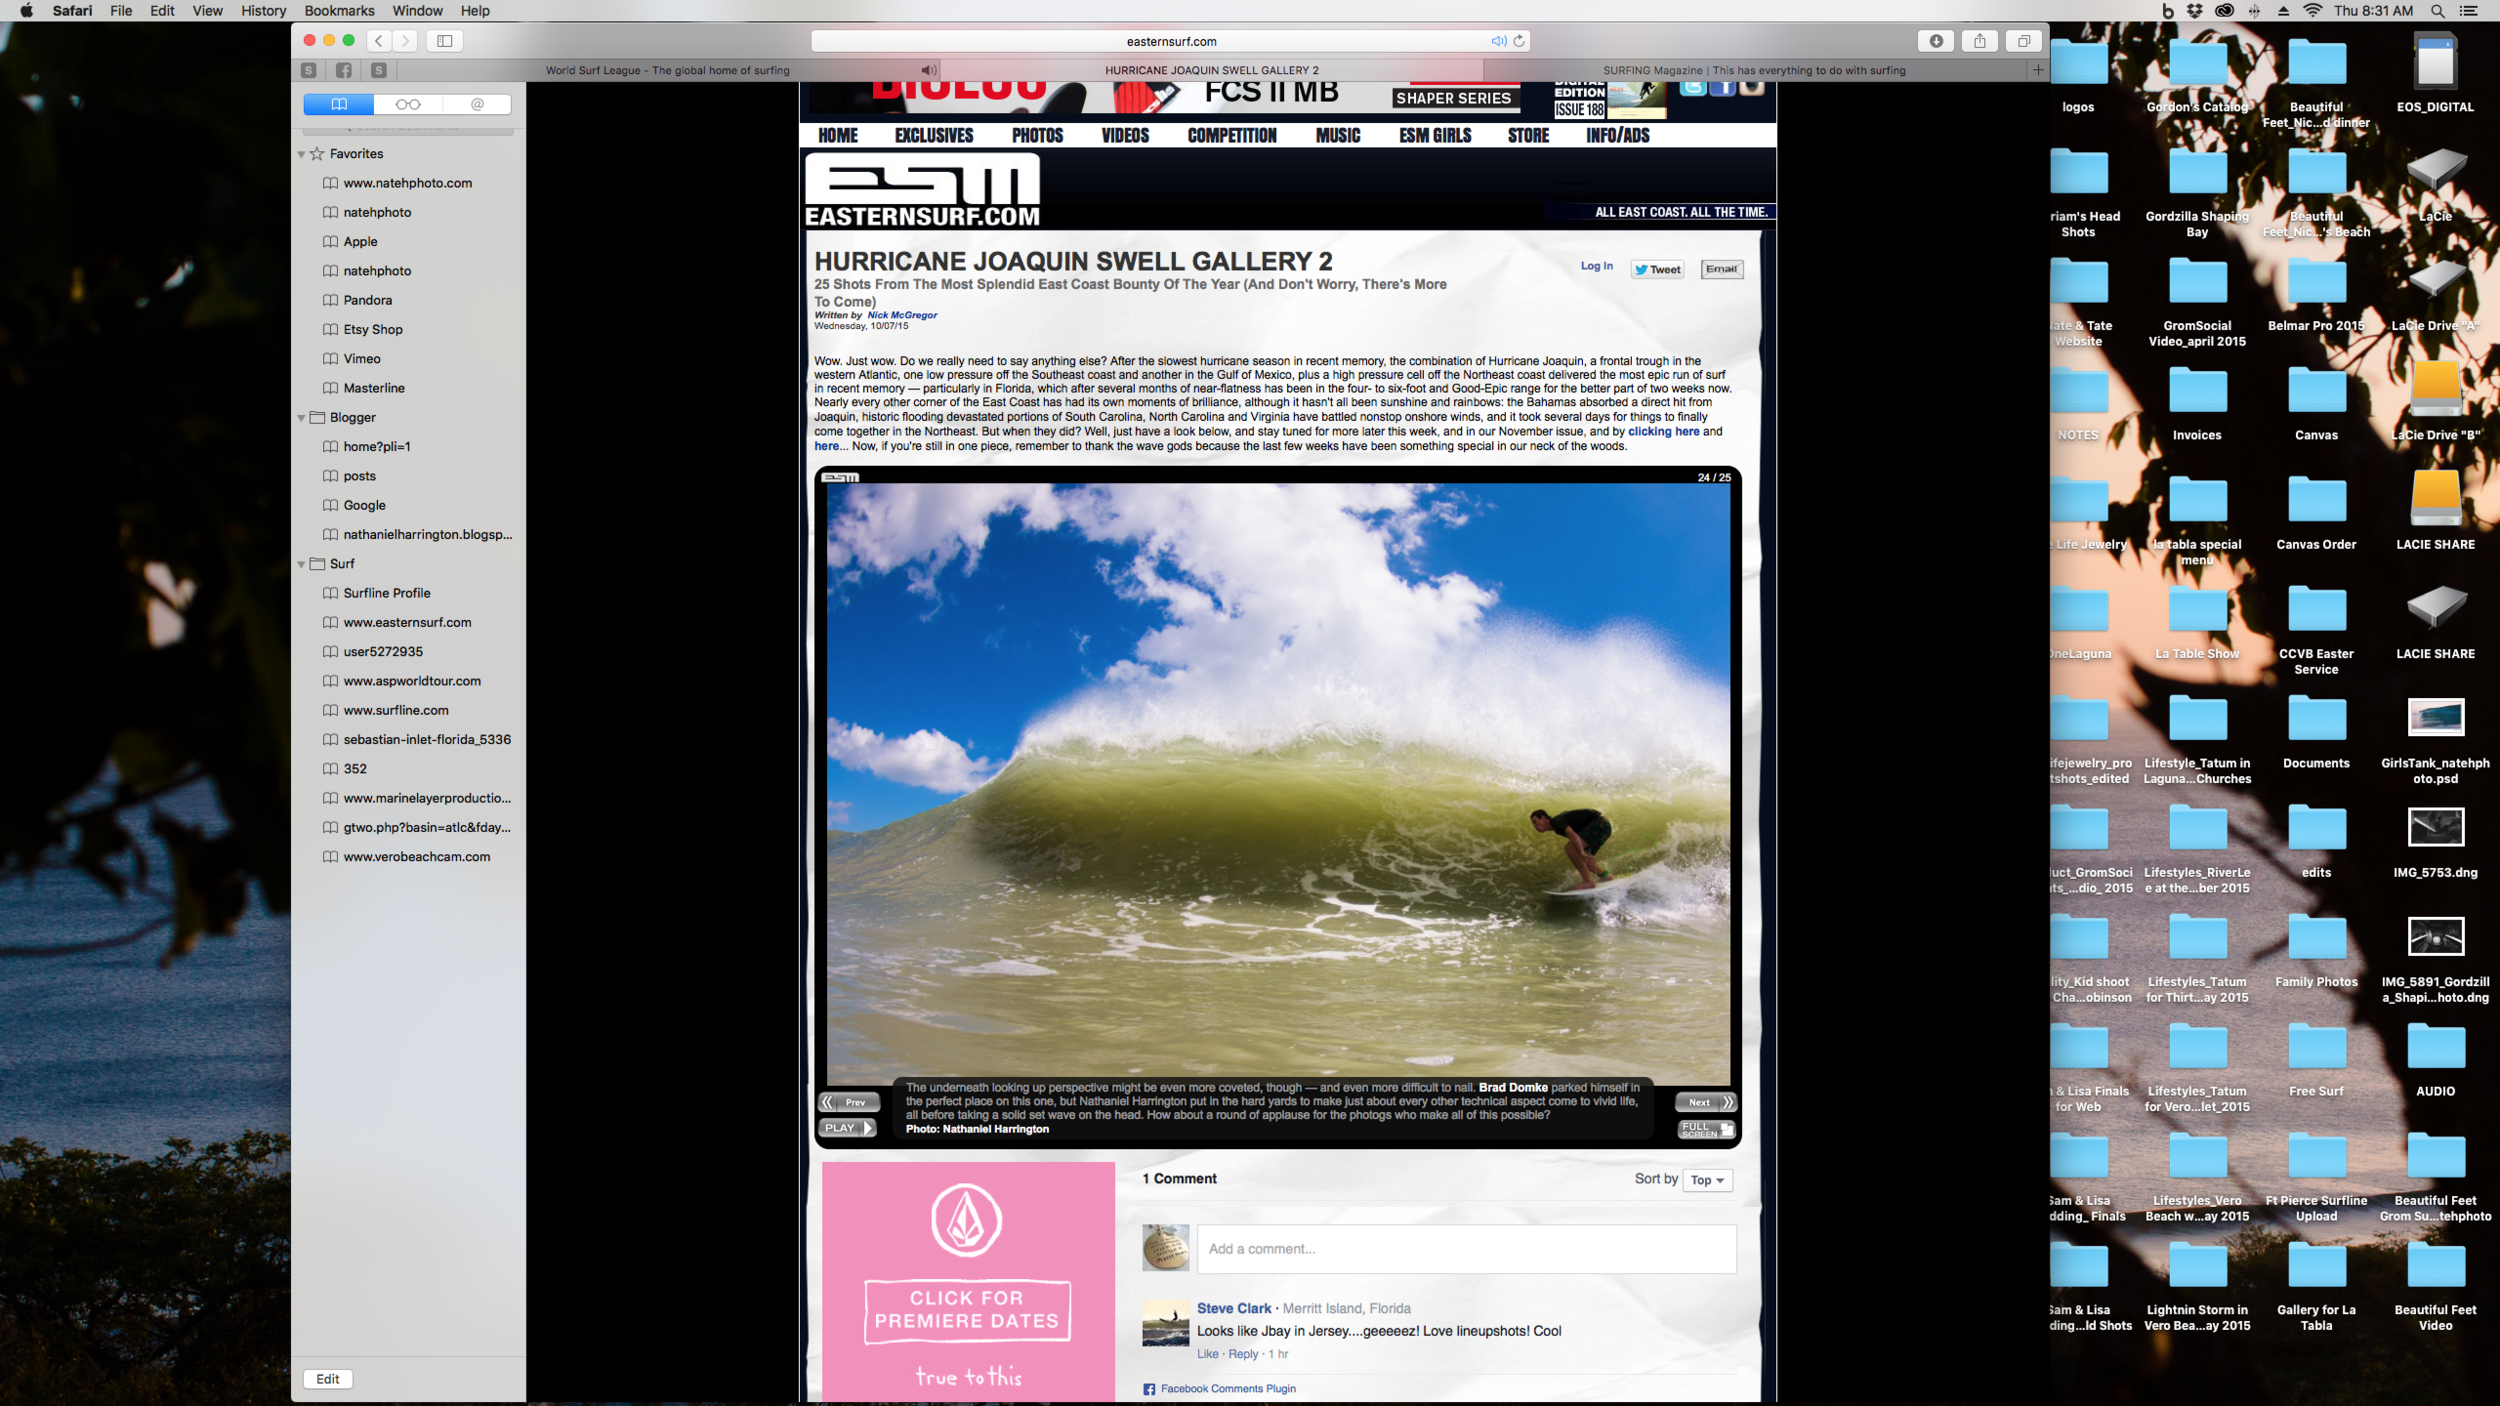 Brad Domke on ESM, Gallery #2 from Hurricane Joaquin.